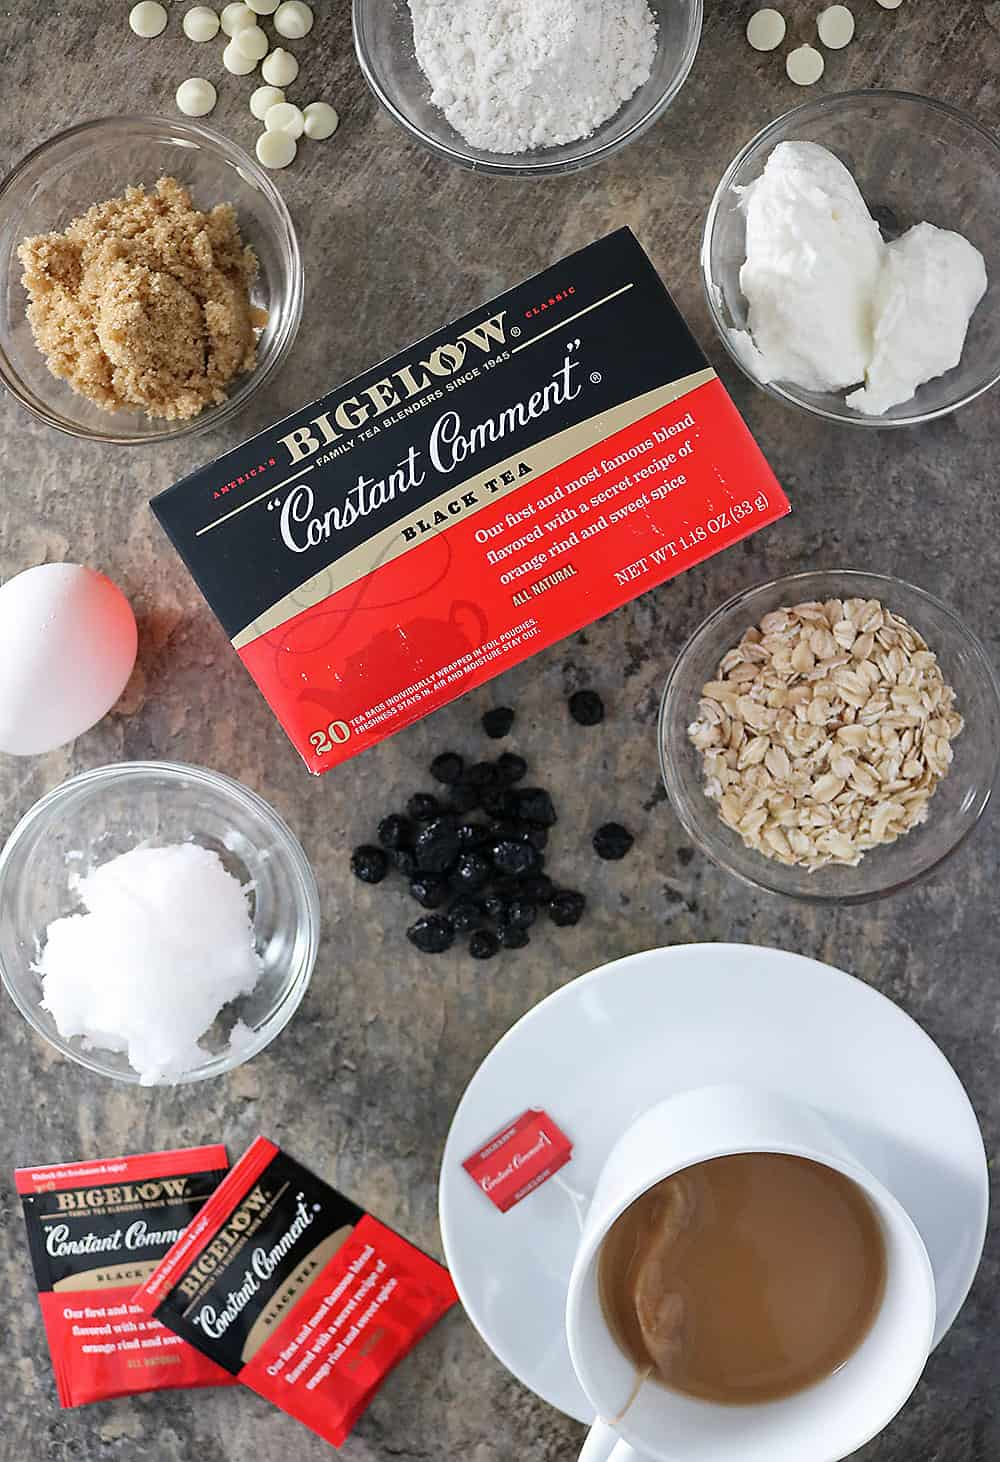 Photo of Ingredients For Making Gluten Free Blueberry White Chocolate Scones